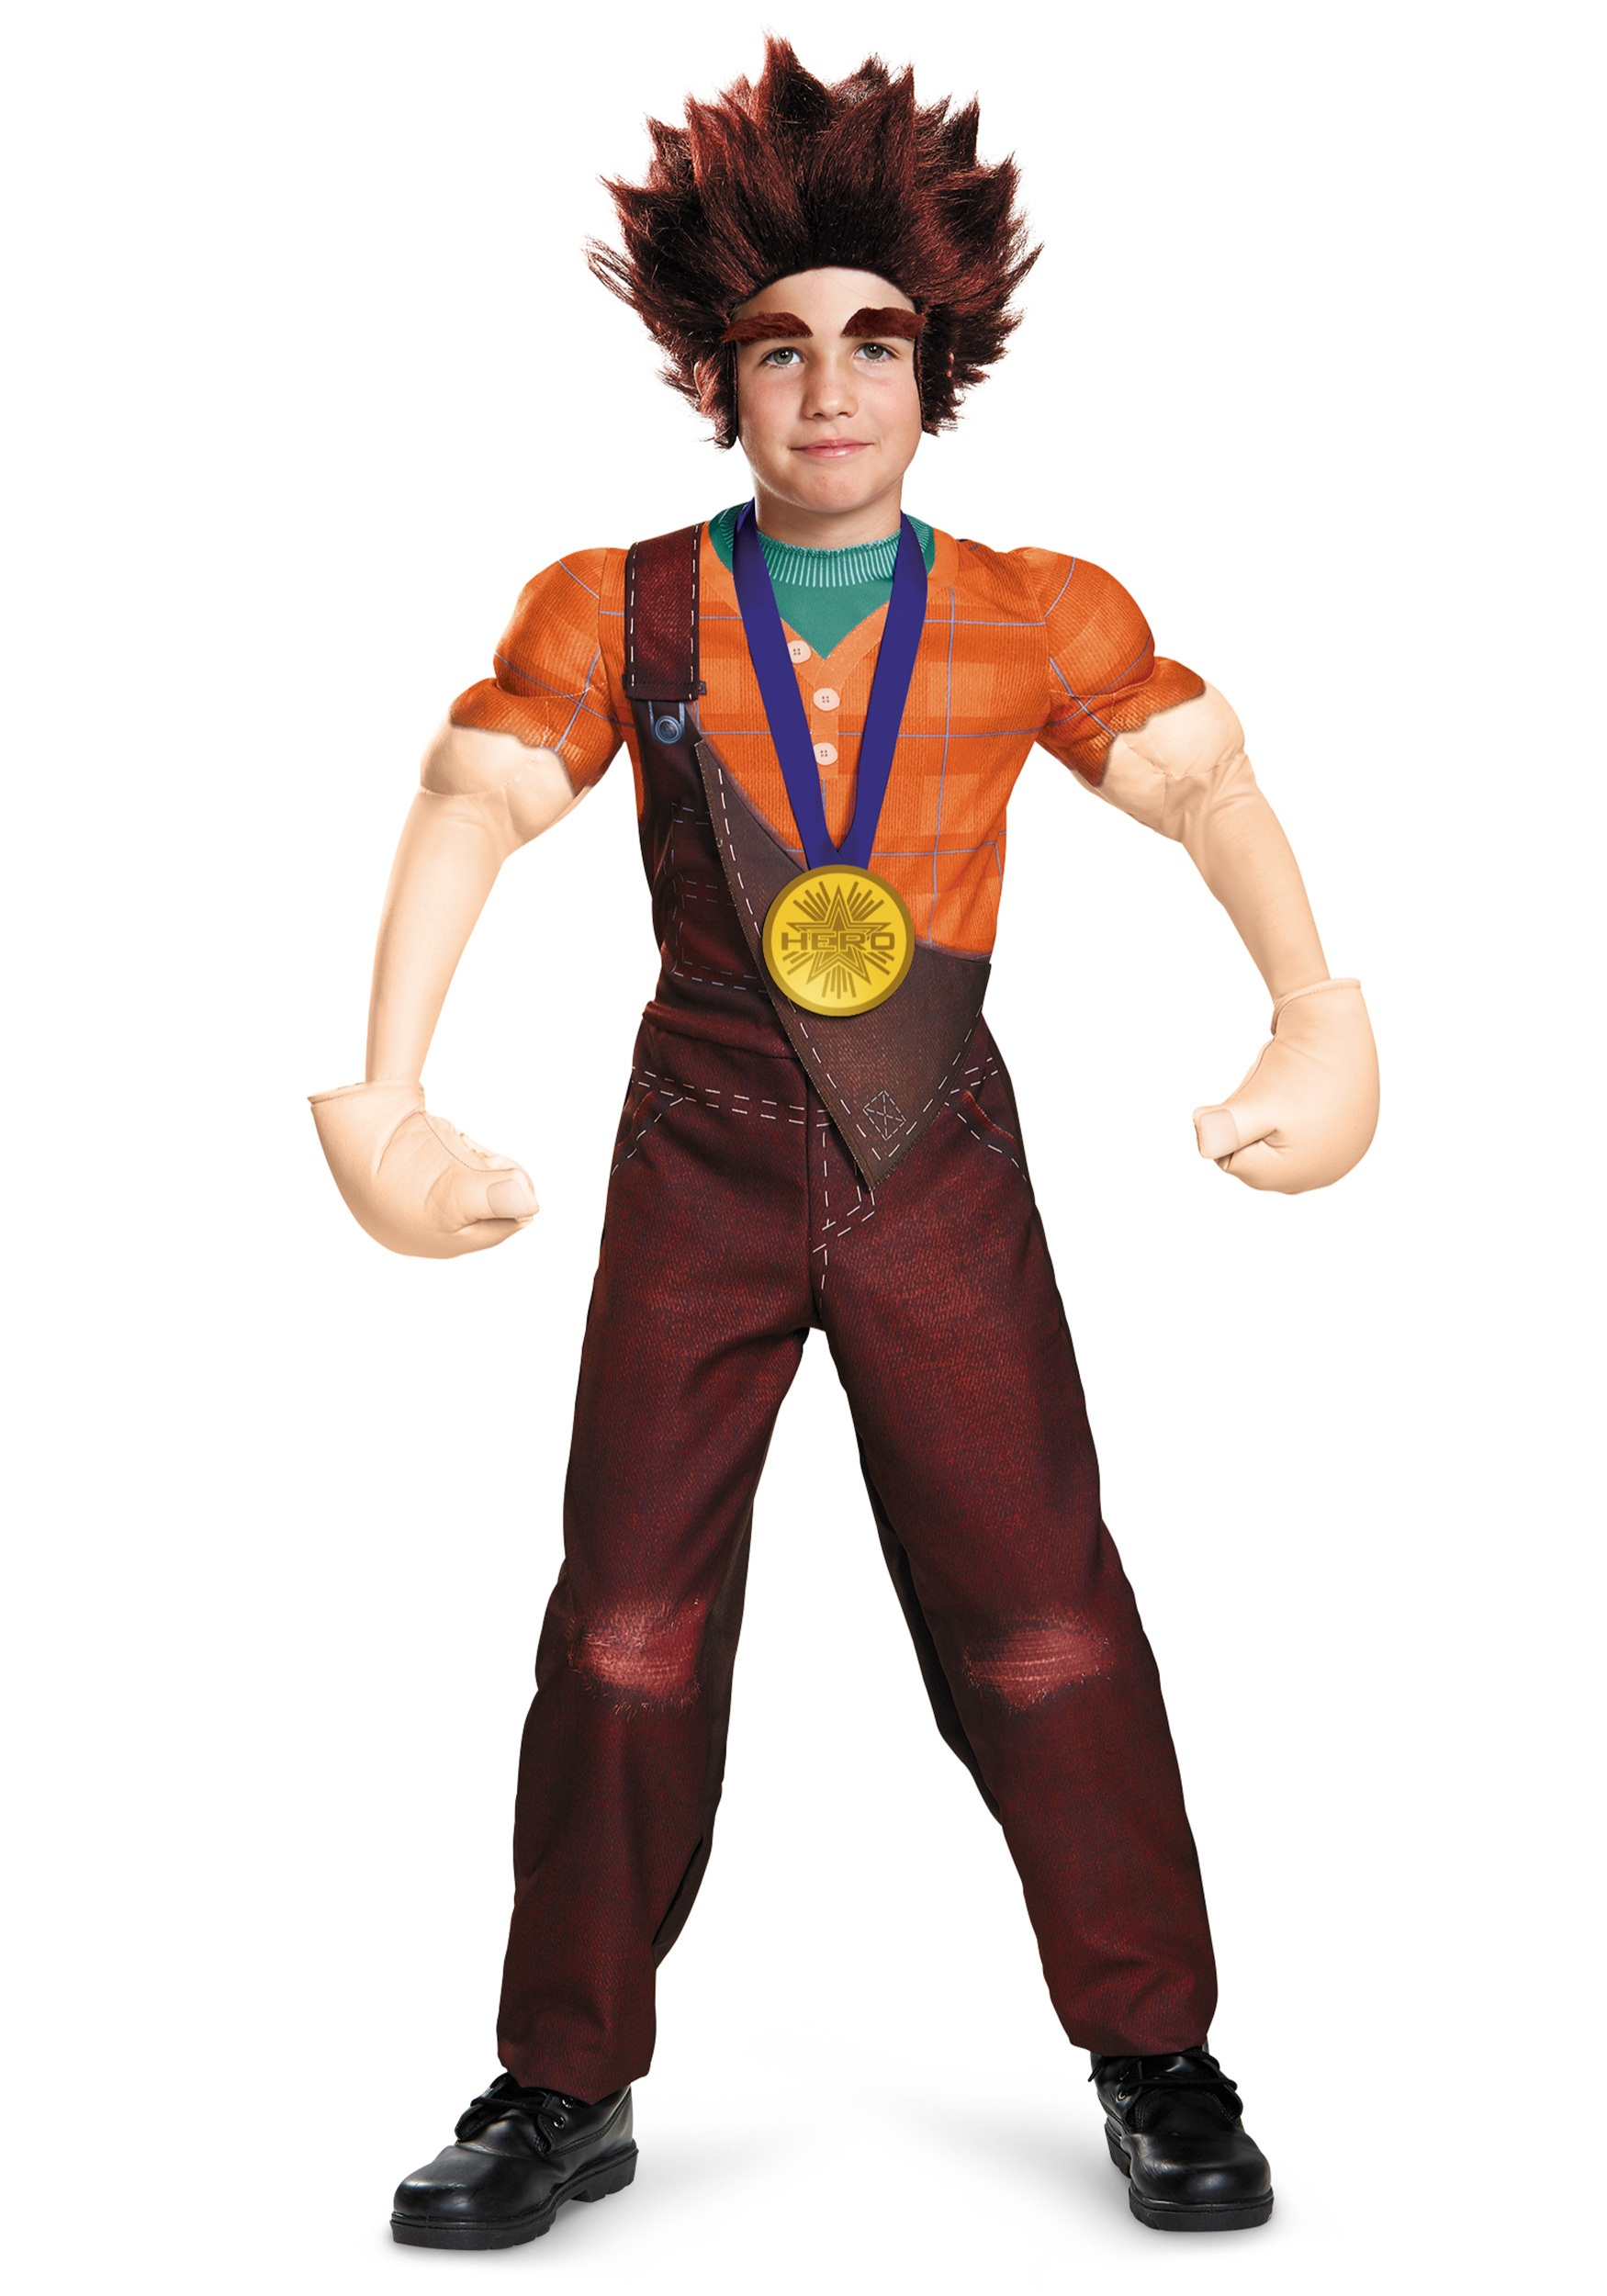 child deluxe wreck it ralph costume - Cheapest Place To Buy Halloween Costumes